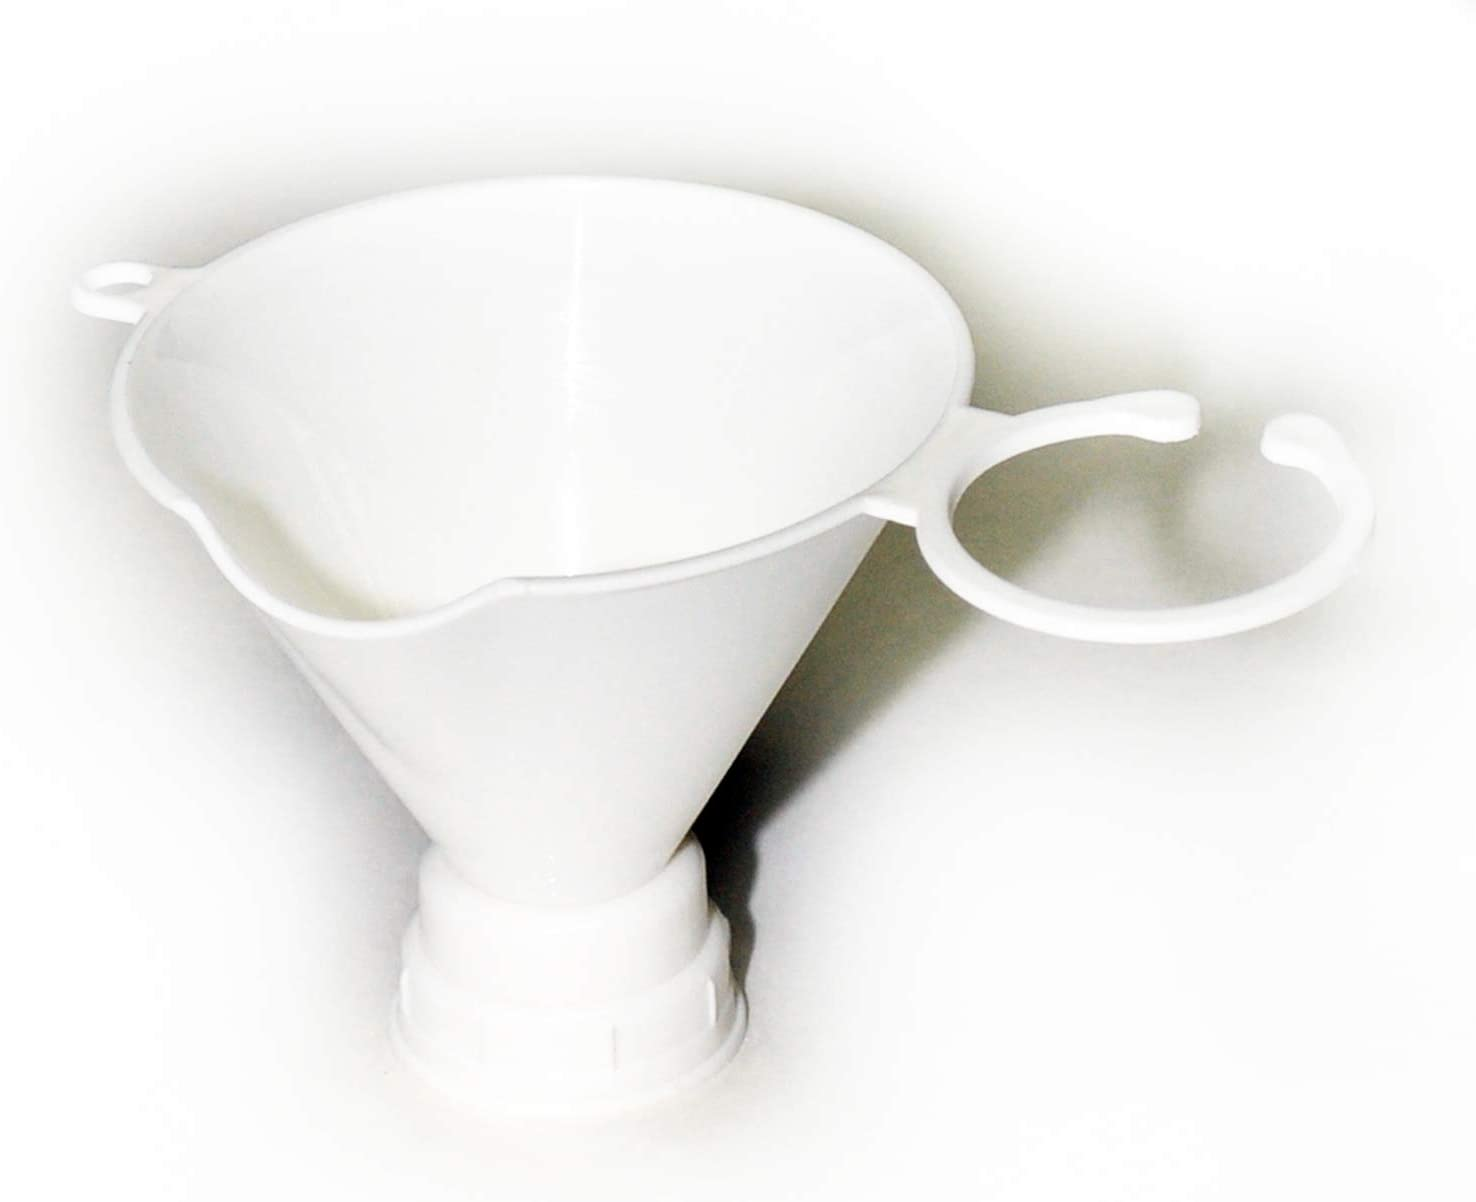 Gadjit Seed & Feed Funnel (Pack of 2) - Funnel Twists onto an Empty Plastic Soda Bottle, Designed for Filling a Soda Bottle with Bird Seed or Nectar (White) Get Ready for Spring Bird Feeding